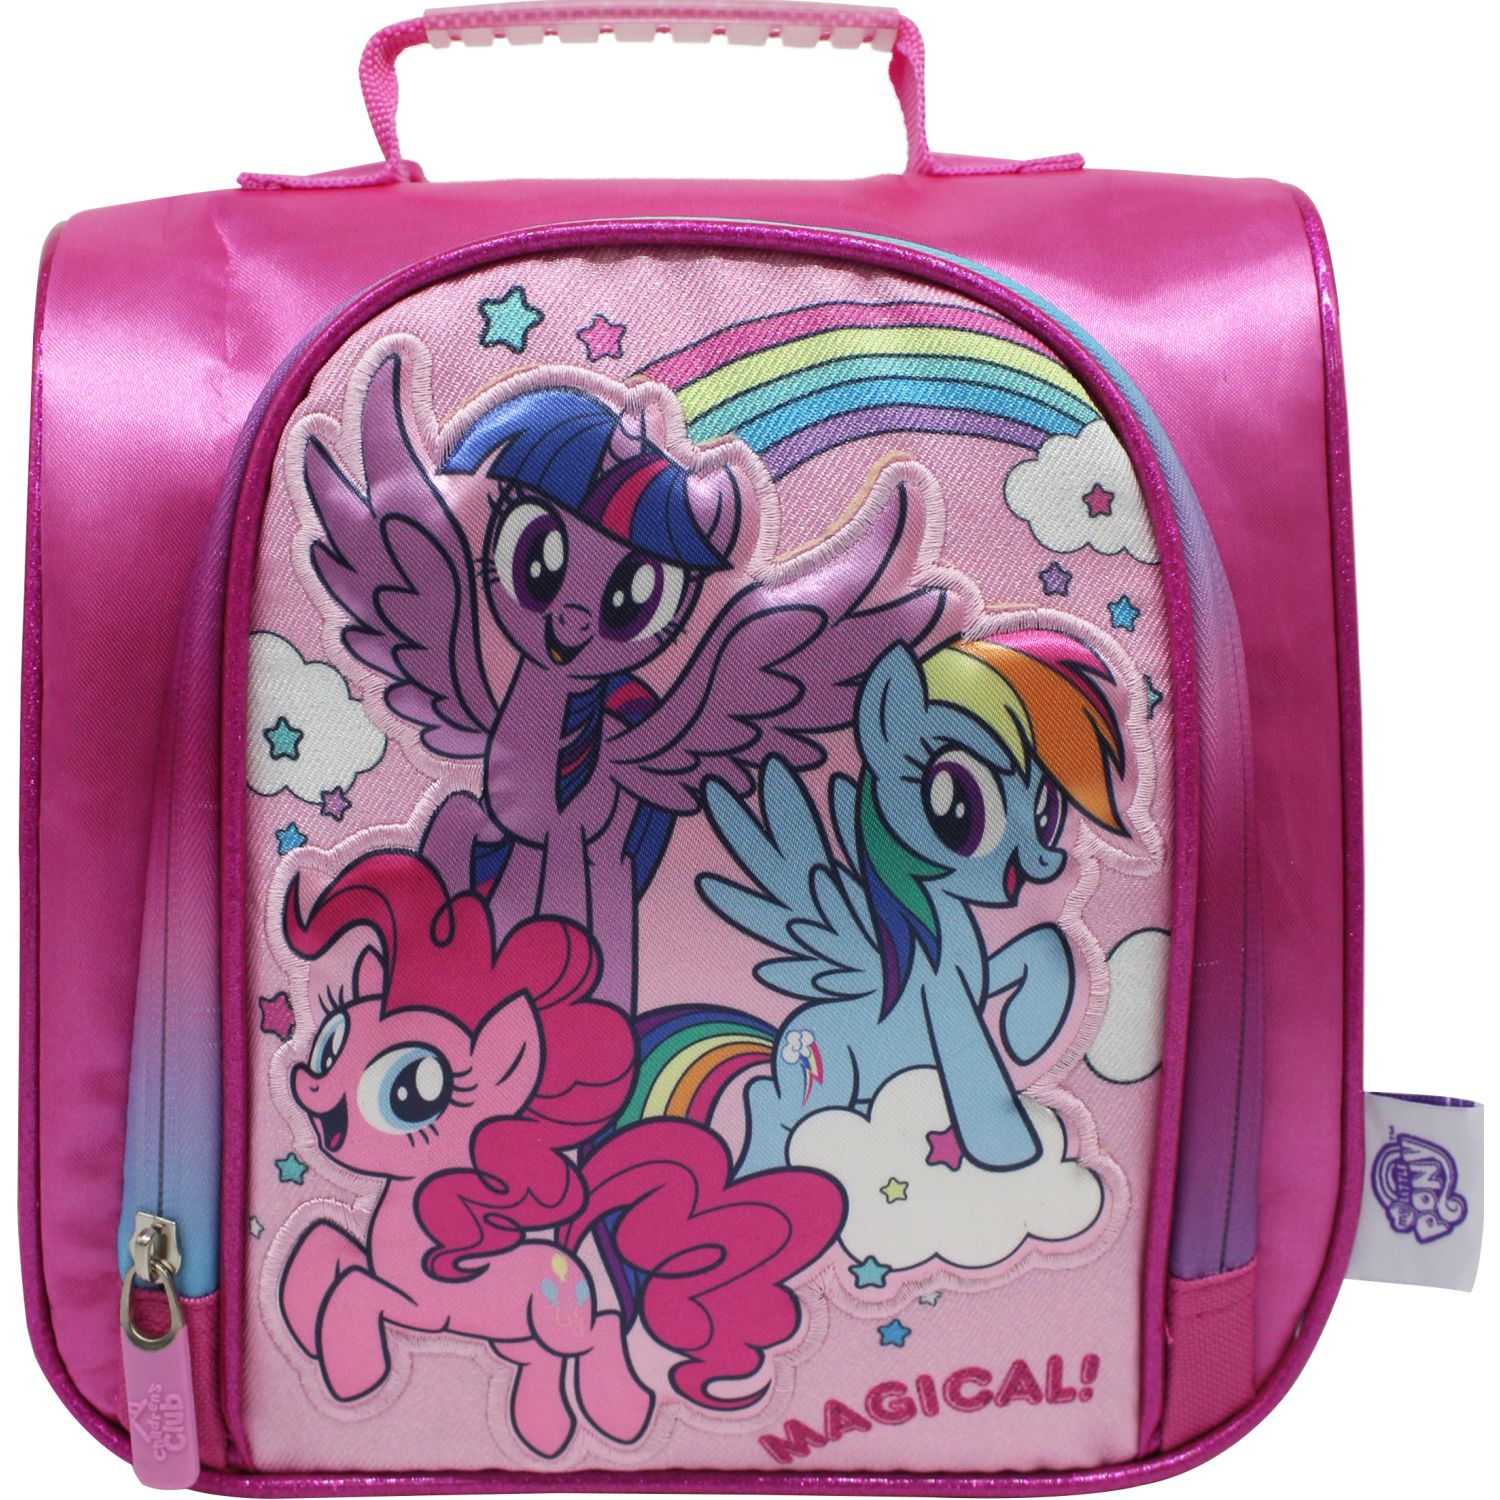 My Little Pony Lonchera My Little Pony ROSADO / LILA Loncheras